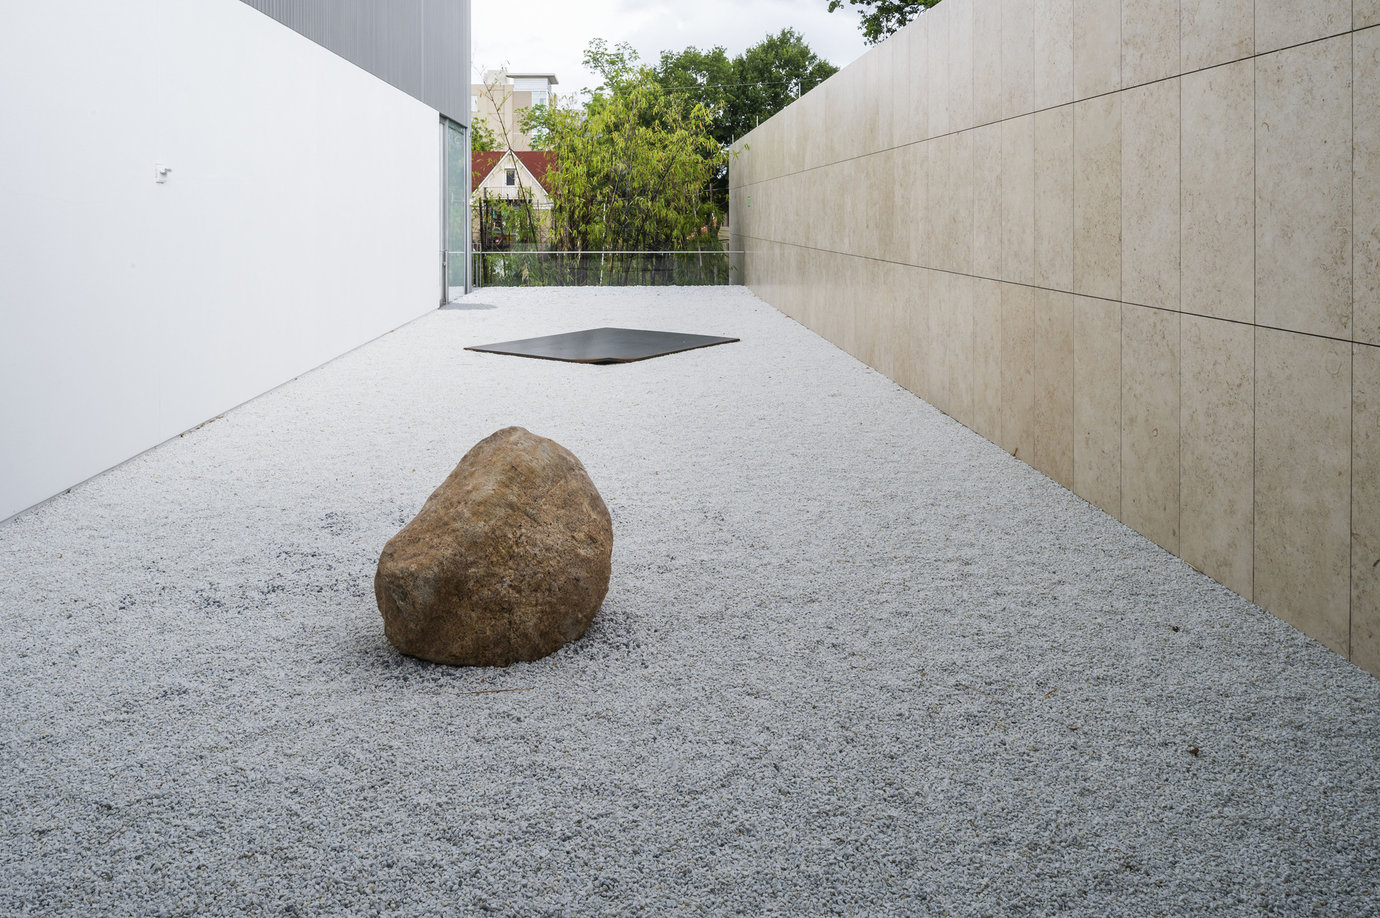 ", 2011. steel plate and stone, overall installation dimensions variable1-1/4"" x 118-1/8"" x 94-1/2"" (3.2 cm x 300 cm x 240 cm), steel plate28"" x 49"" x 49"" (71.1 cm x 124.5 cm x 124.5 cm), stone."